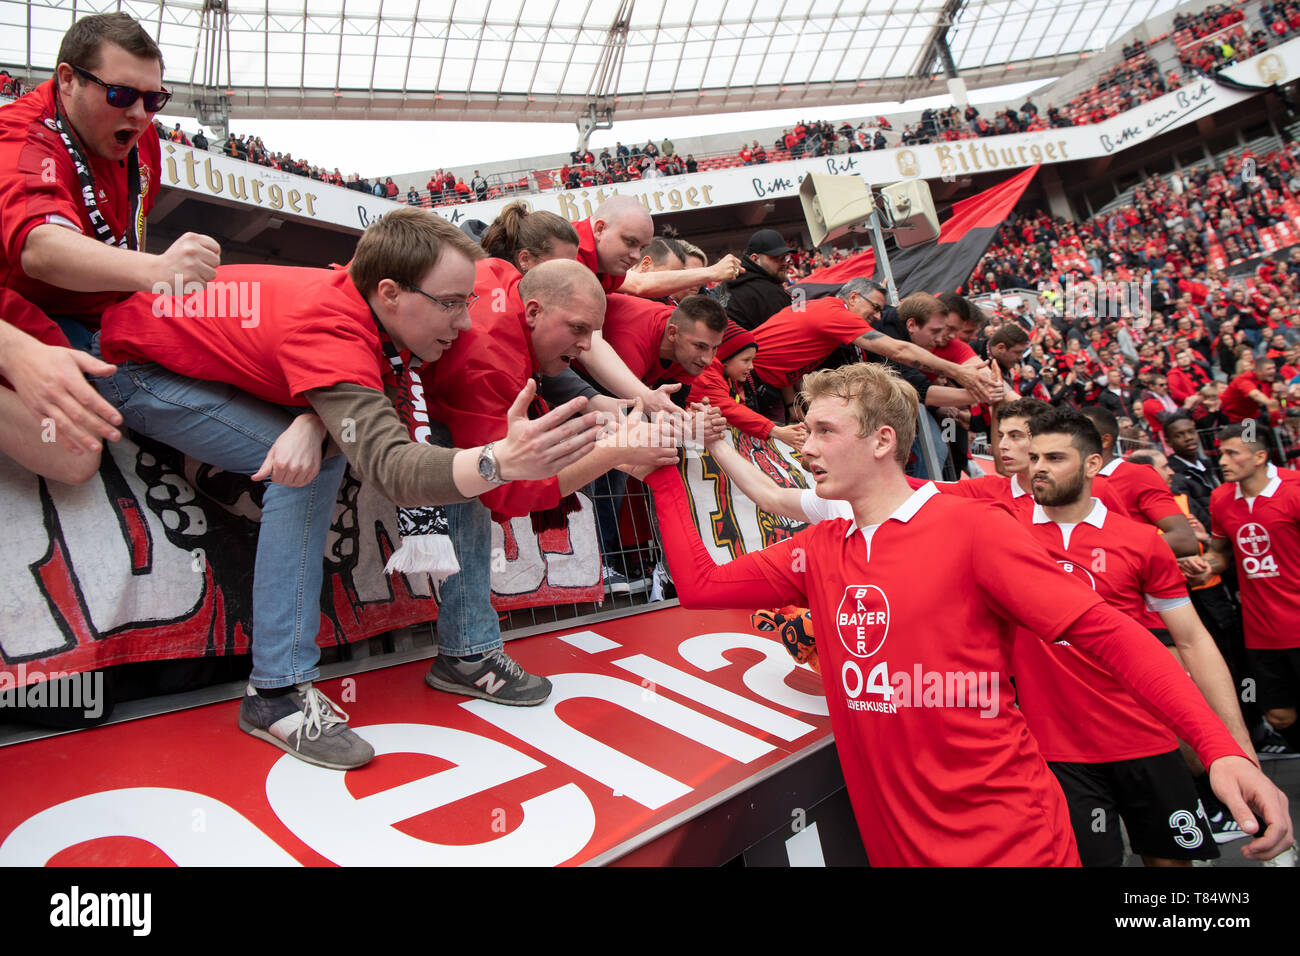 Leverkusen, Germany. 11th May, 2019. Soccer: Bundesliga, Bayer Leverkusen - FC Schalke 04, 33rd matchday in the BayArena. Leverkusen's Julian Brandt (centre r) claps his hands with the fans in the stands. Credit: Federico Gambarini/dpa - IMPORTANT NOTE: In accordance with the requirements of the DFL Deutsche Fußball Liga or the DFB Deutscher Fußball-Bund, it is prohibited to use or have used photographs taken in the stadium and/or the match in the form of sequence images and/or video-like photo sequences./dpa/Alamy Live News - Stock Image